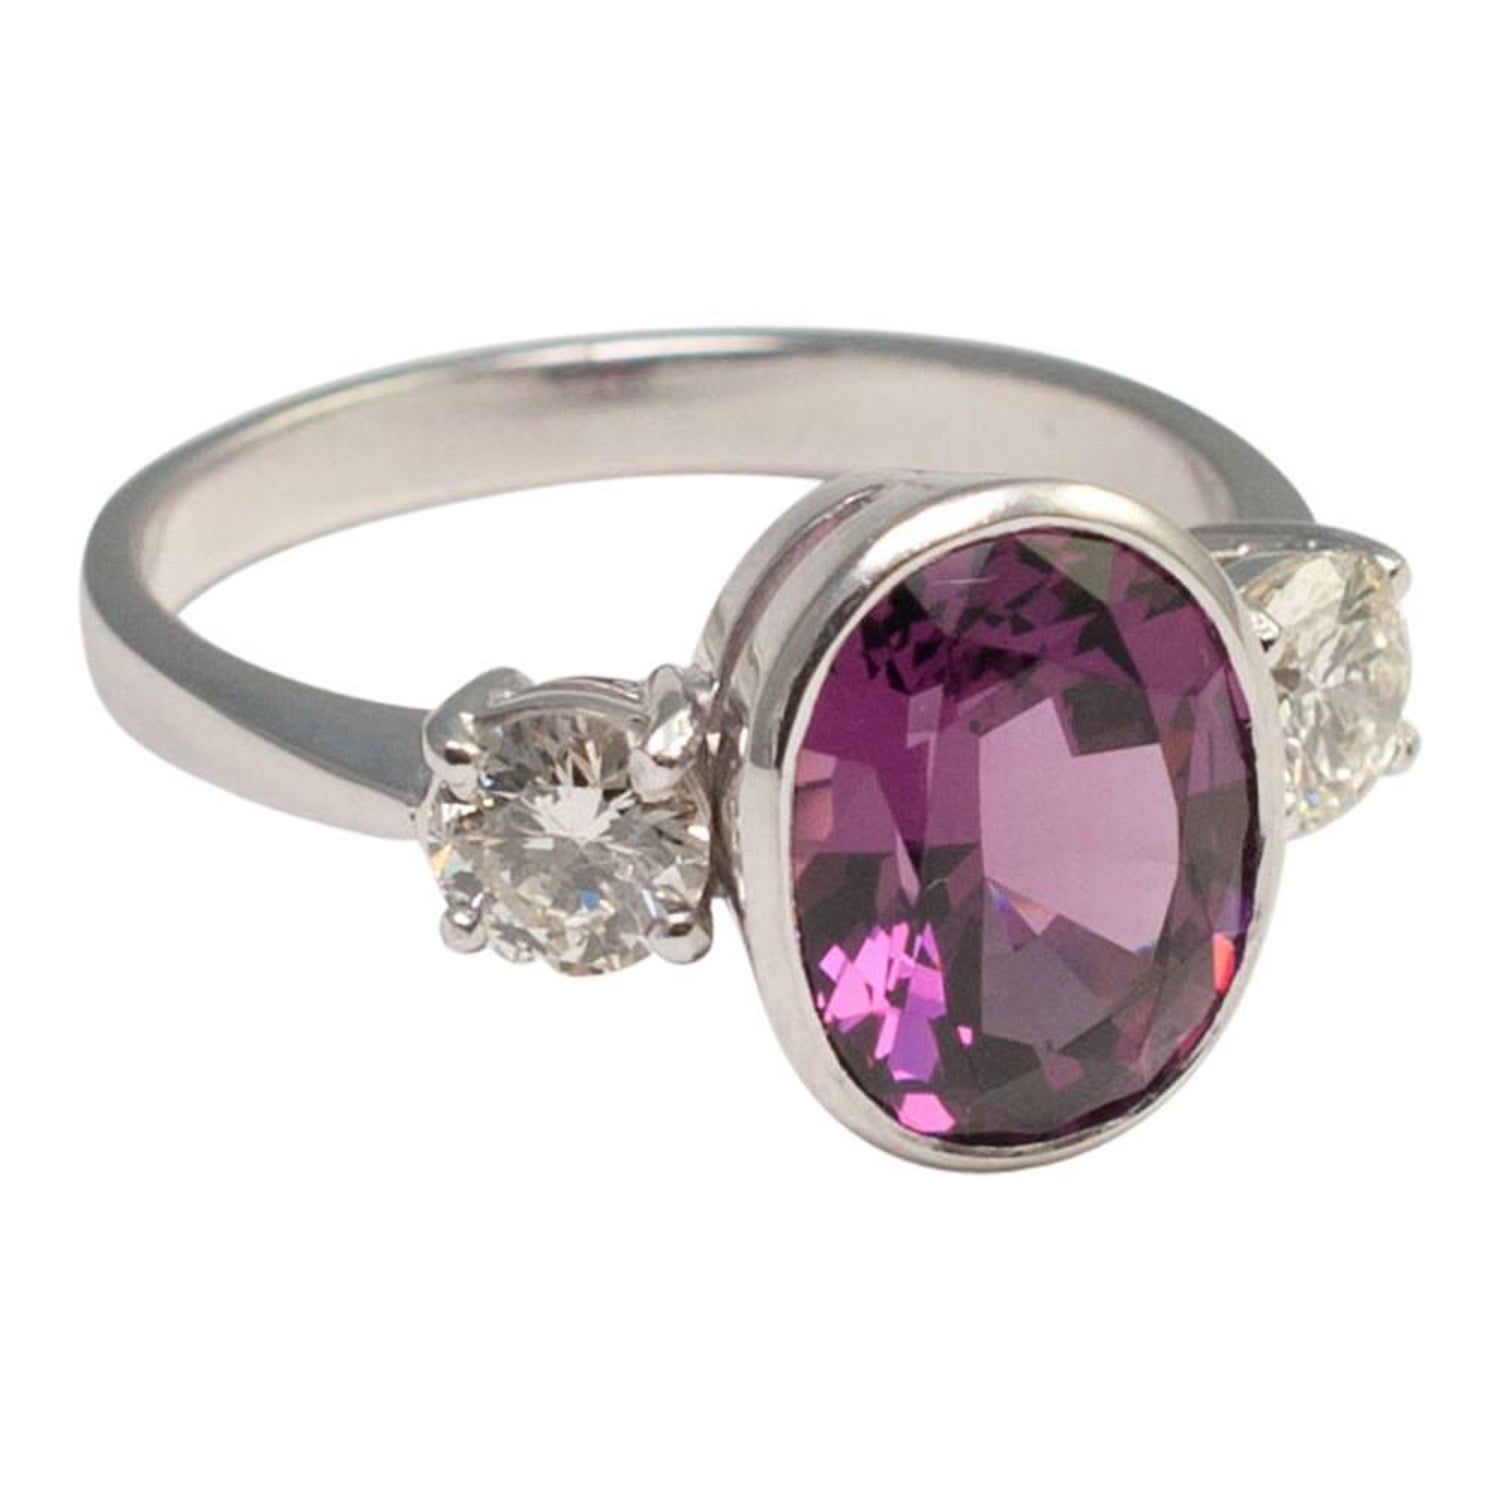 dublin ireland rings campbell ring products jewellers white diamond engagement gold halo garnet rhodolite